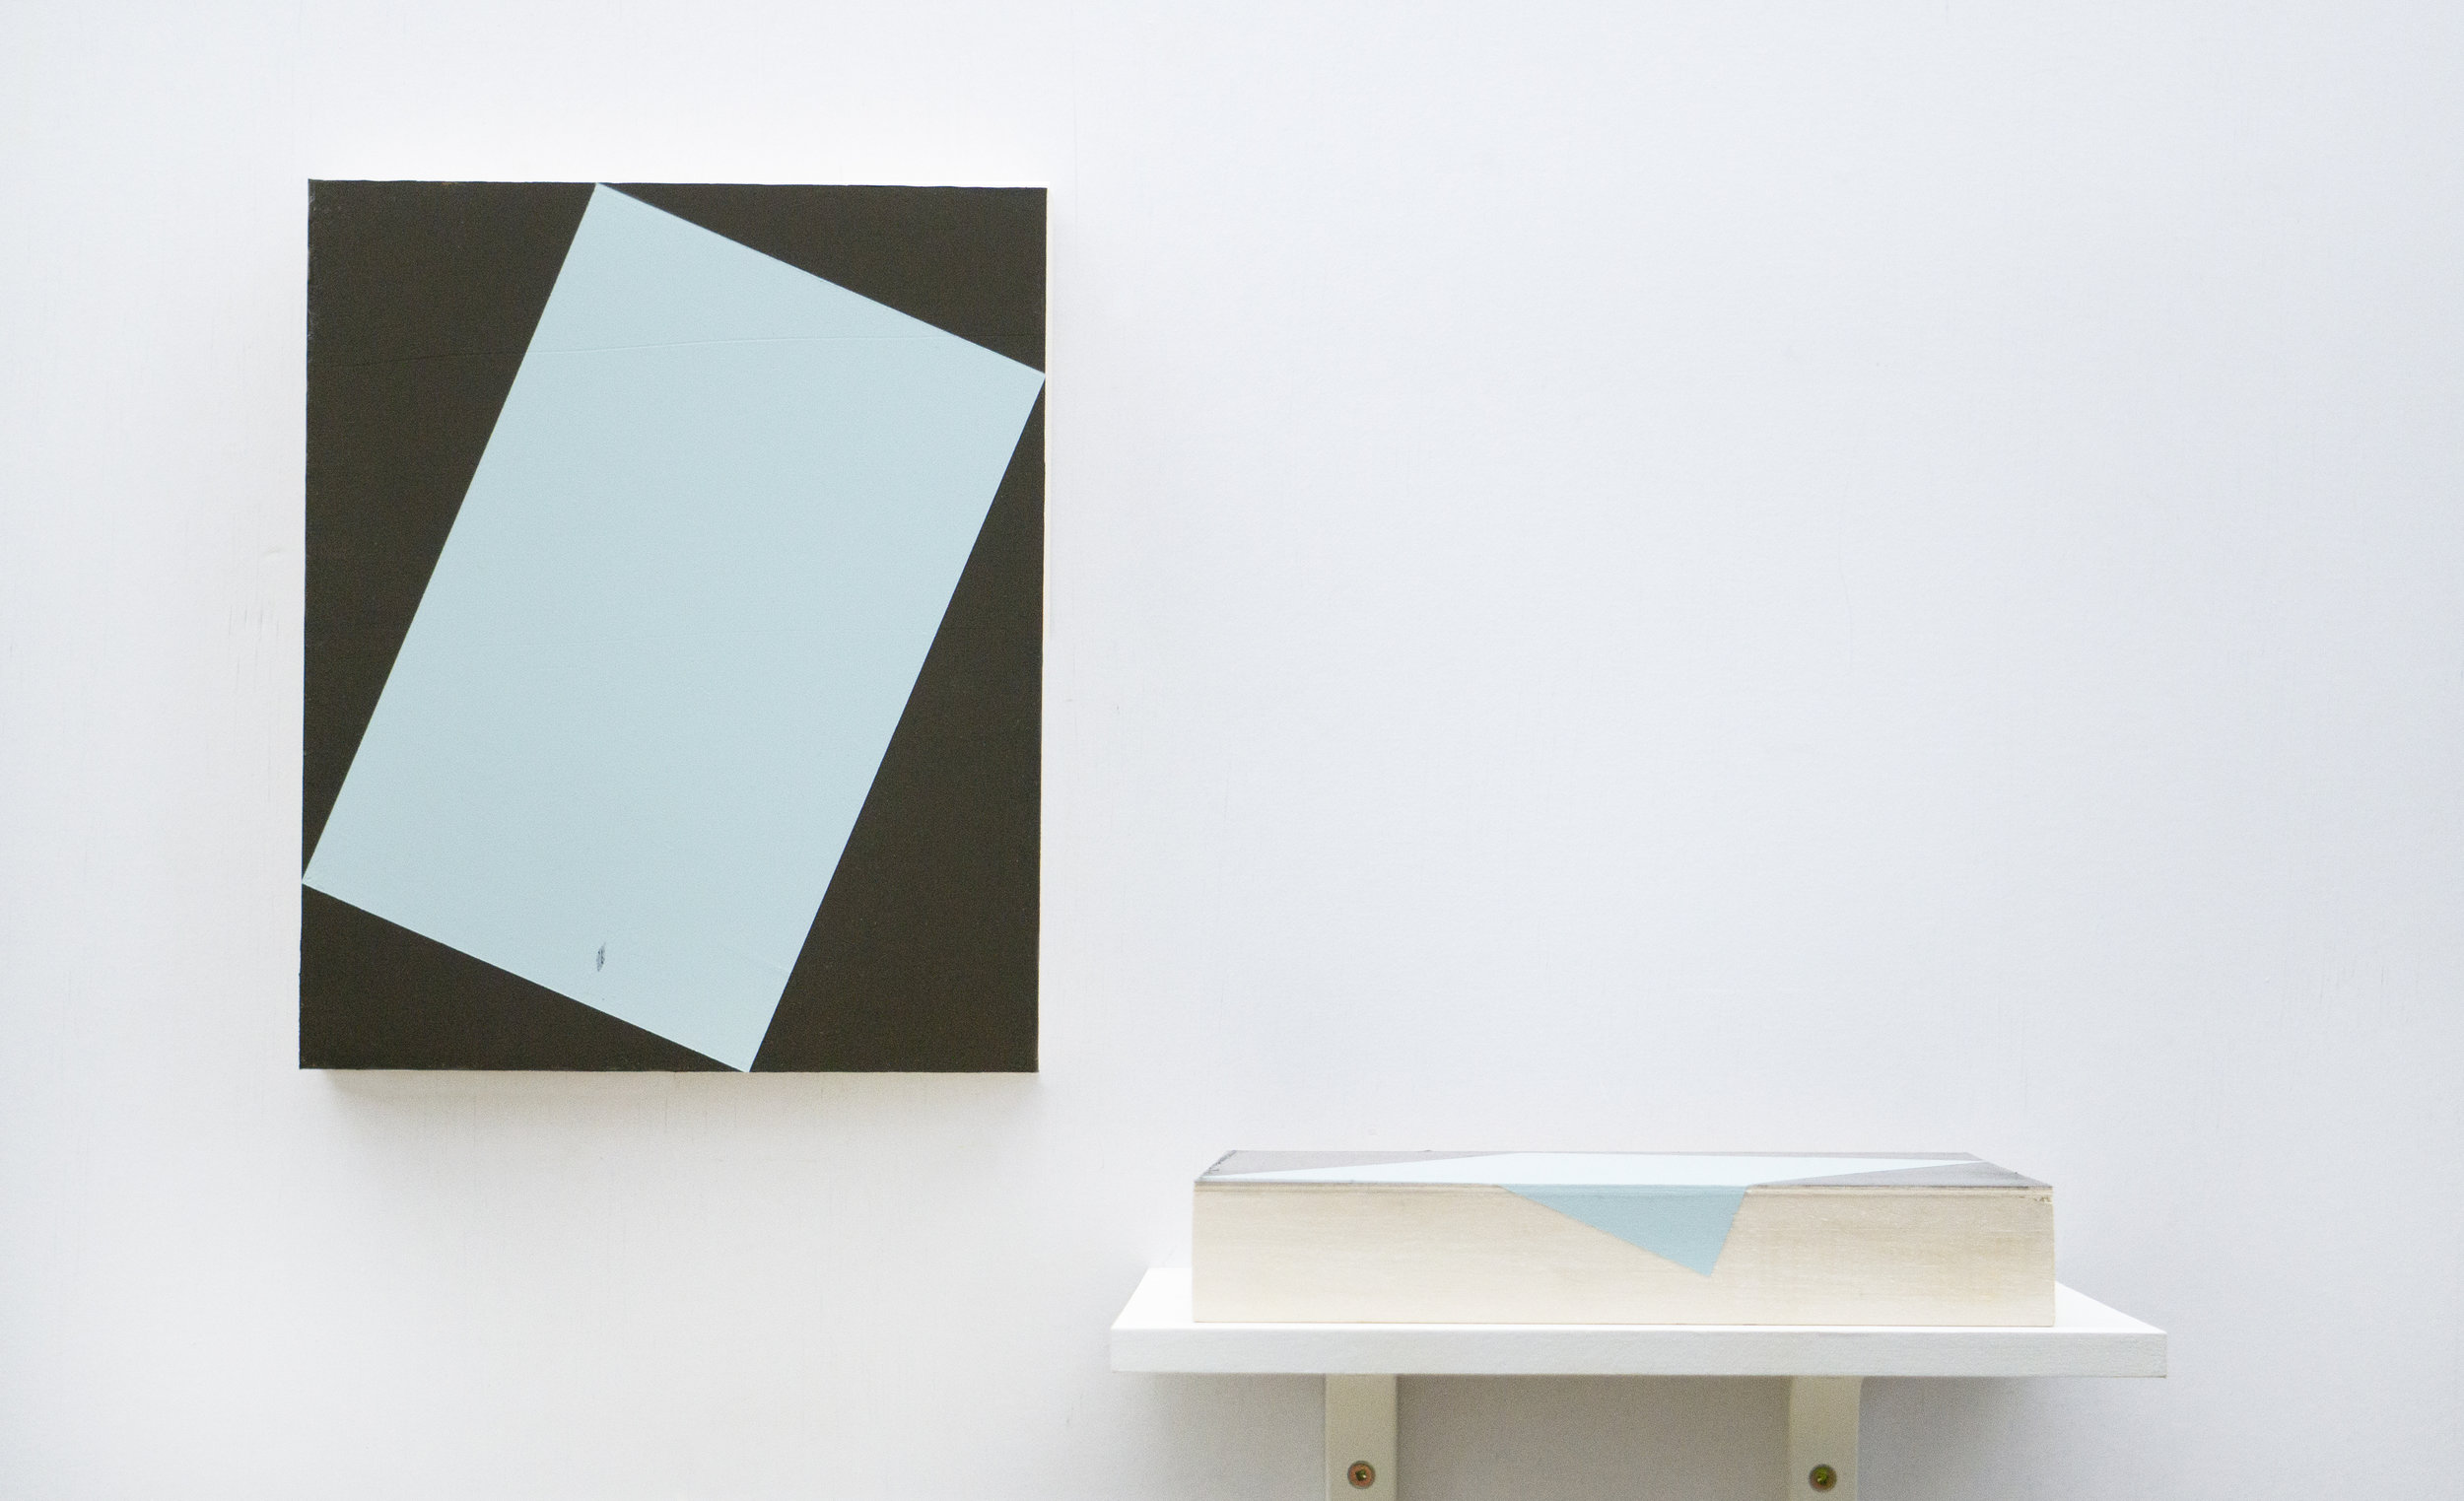 """2, 3  Left:  A Contained 3D Object  Right:  A Folded 2D Paper . Each panel sized 12"""" x 10"""" Acrylic on wood panels 2019"""